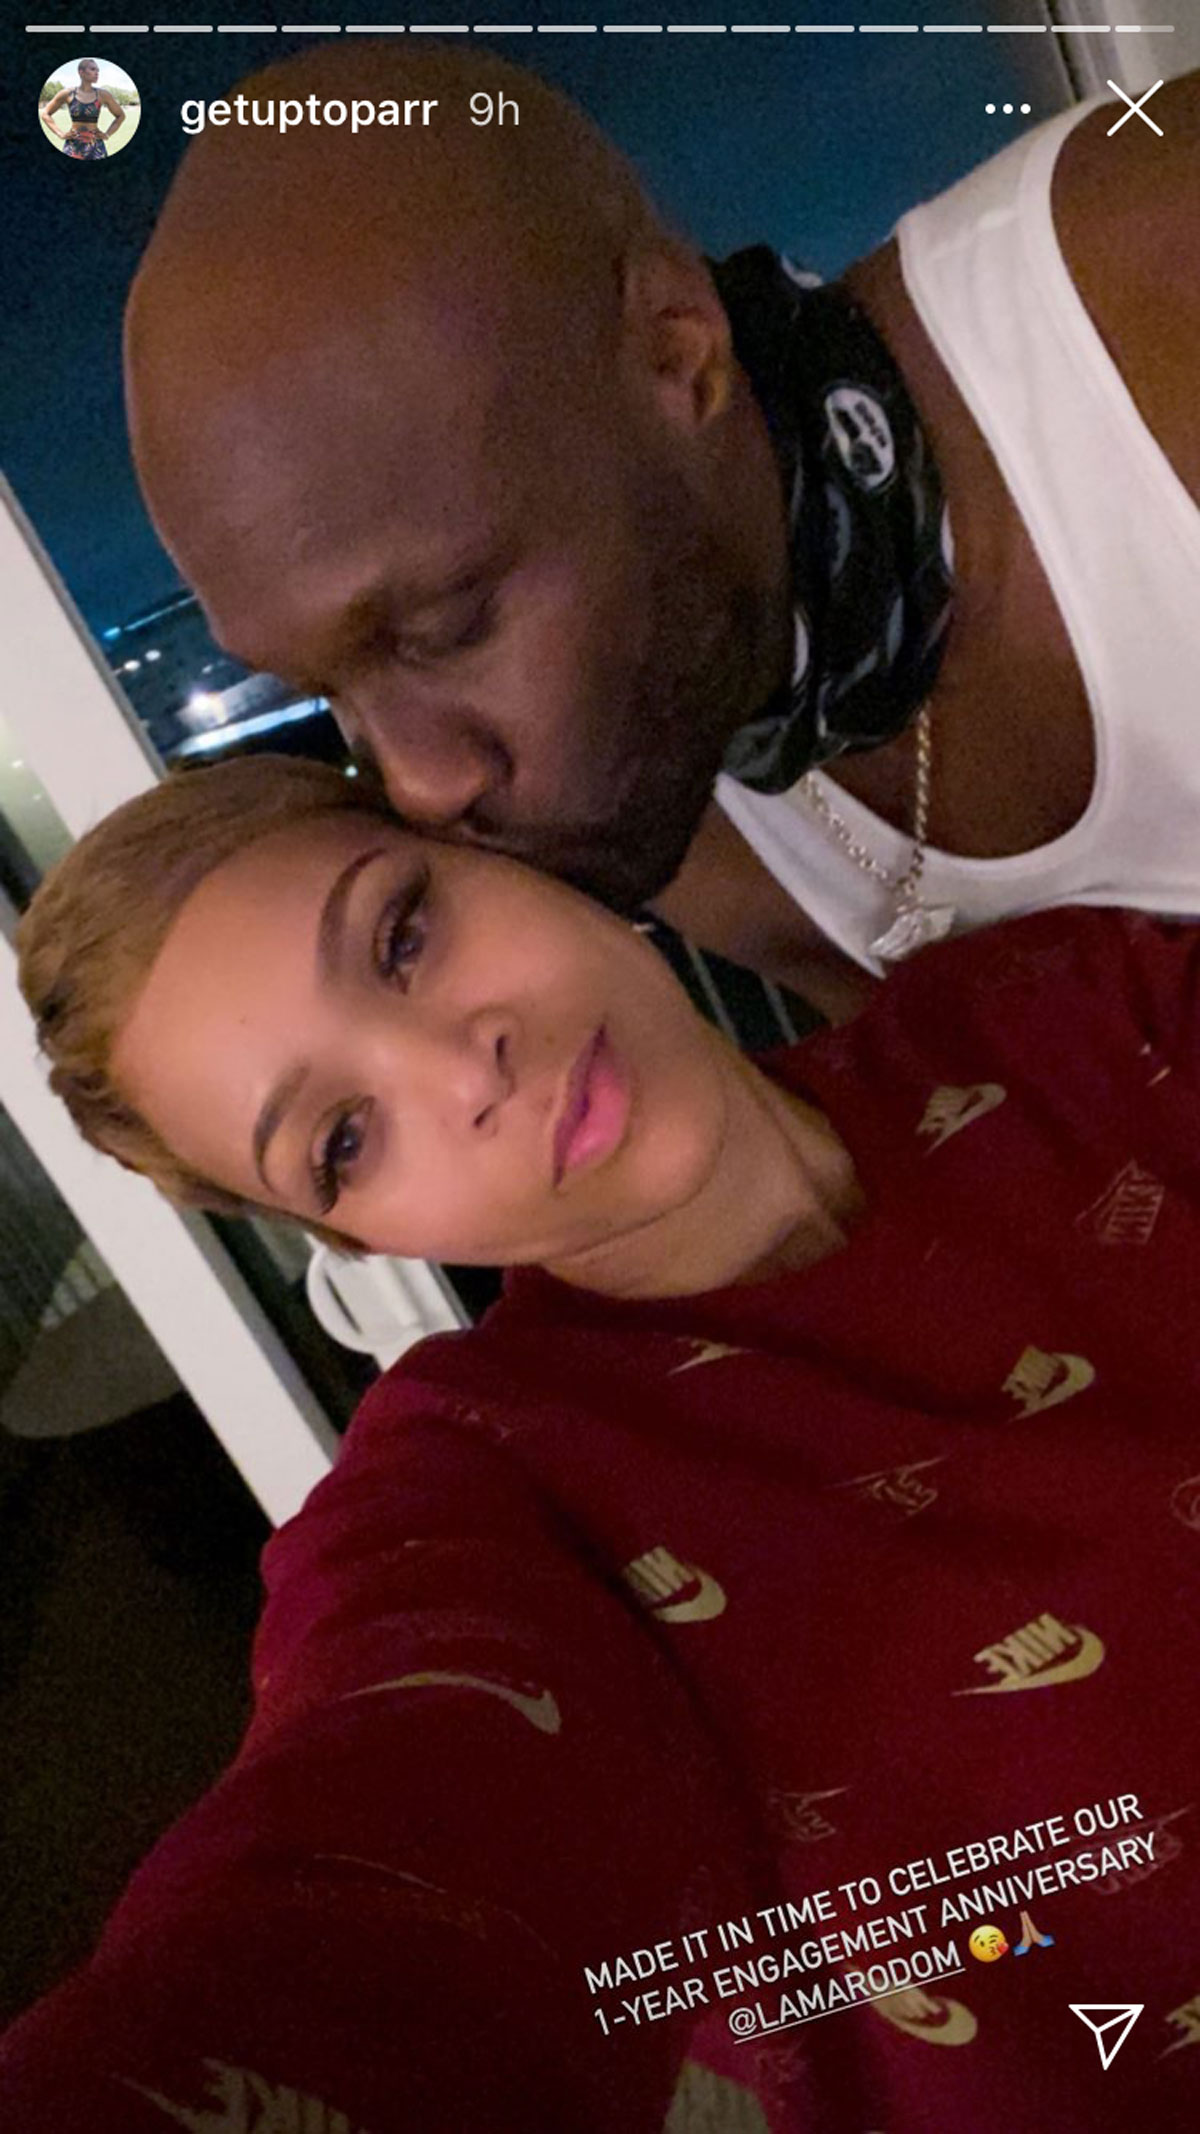 Lamar Odom and his fiancée, Sabrina Parr, appear to have reconciled after dramatic breakup news last week!